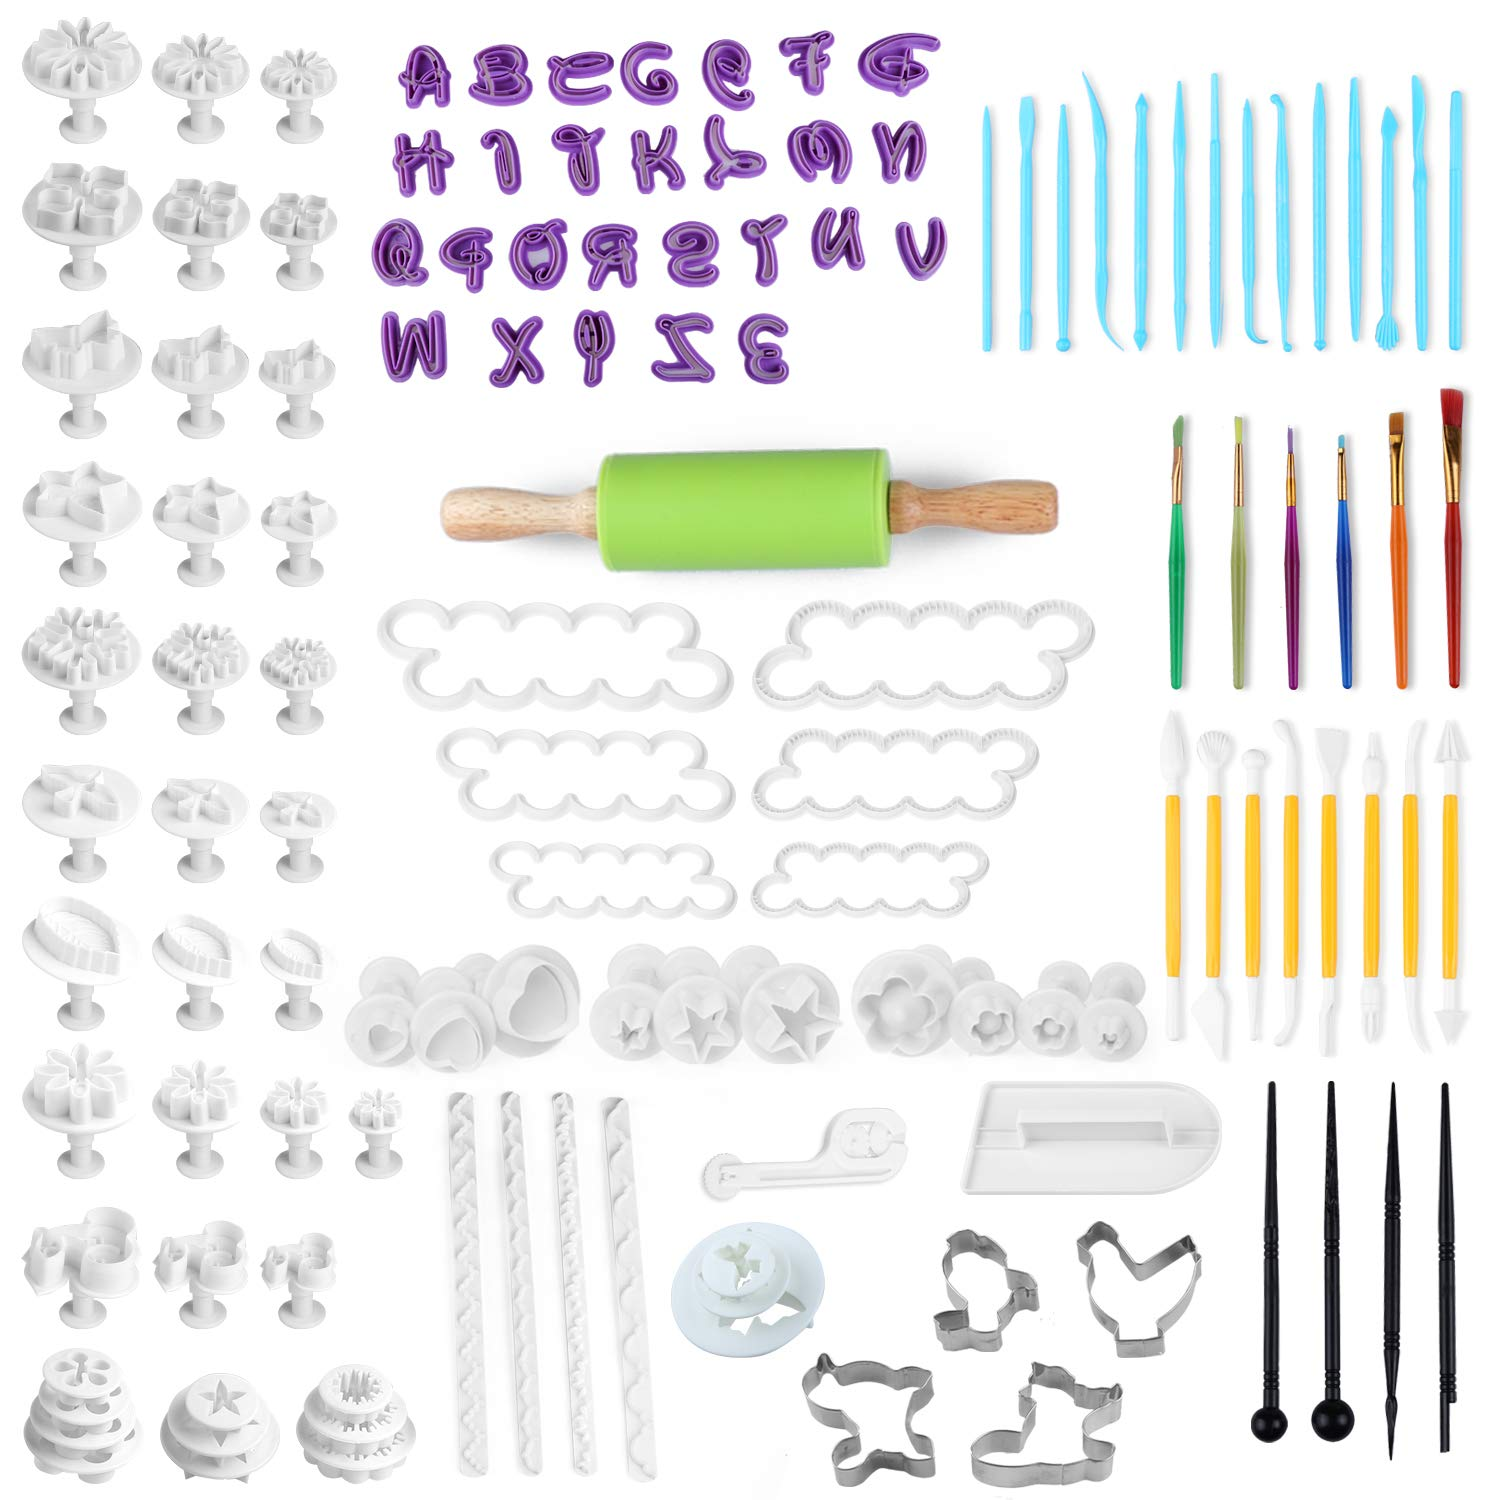 Fondant Tools,Thsinde 87 Fondant Cake Sugarcraft Alphabet Letters Cutters Cake Decorating Tools Cutters Icing Modelling Tool Kit Rolling Pin, Smoother, Embosser Mould Tools,Scissors SYNCHKG131067